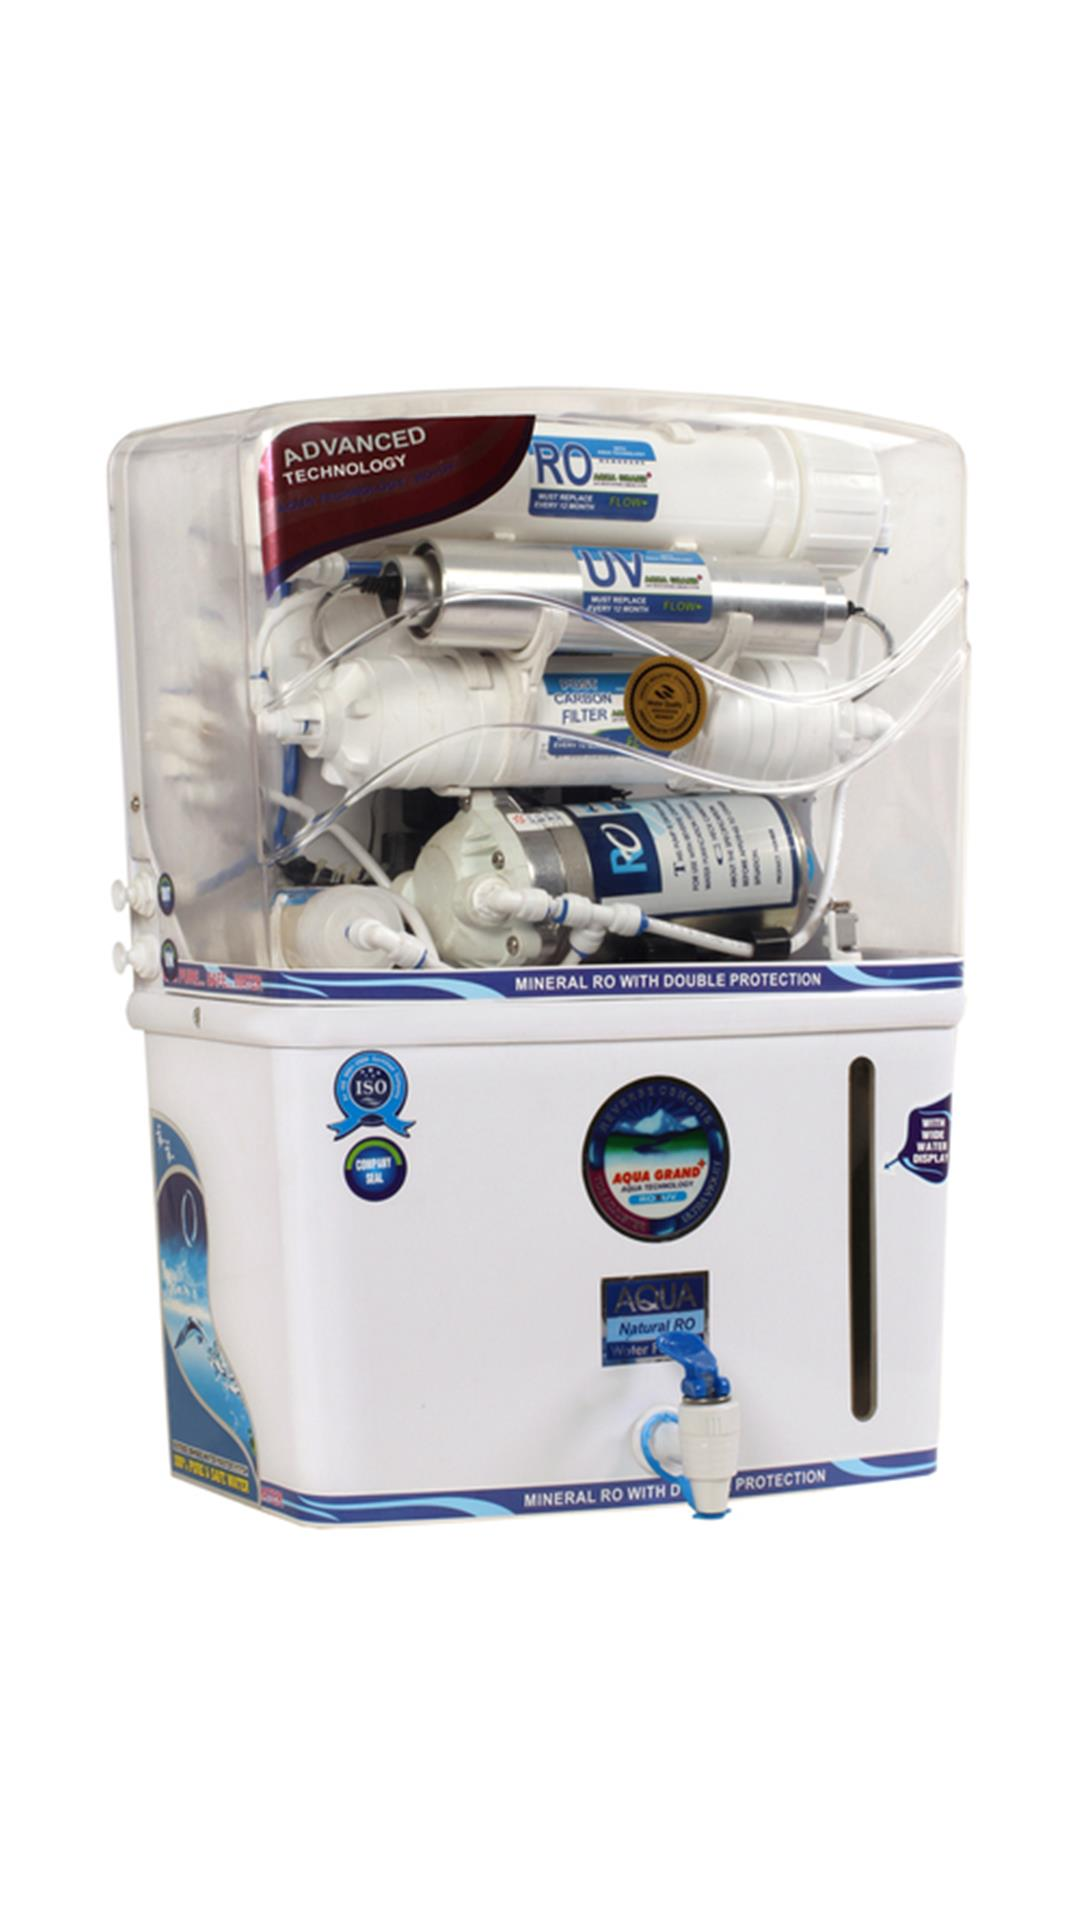 Aquagrand aqua-03 12 L RO+UV+UF Water Purifier (White & Blue)